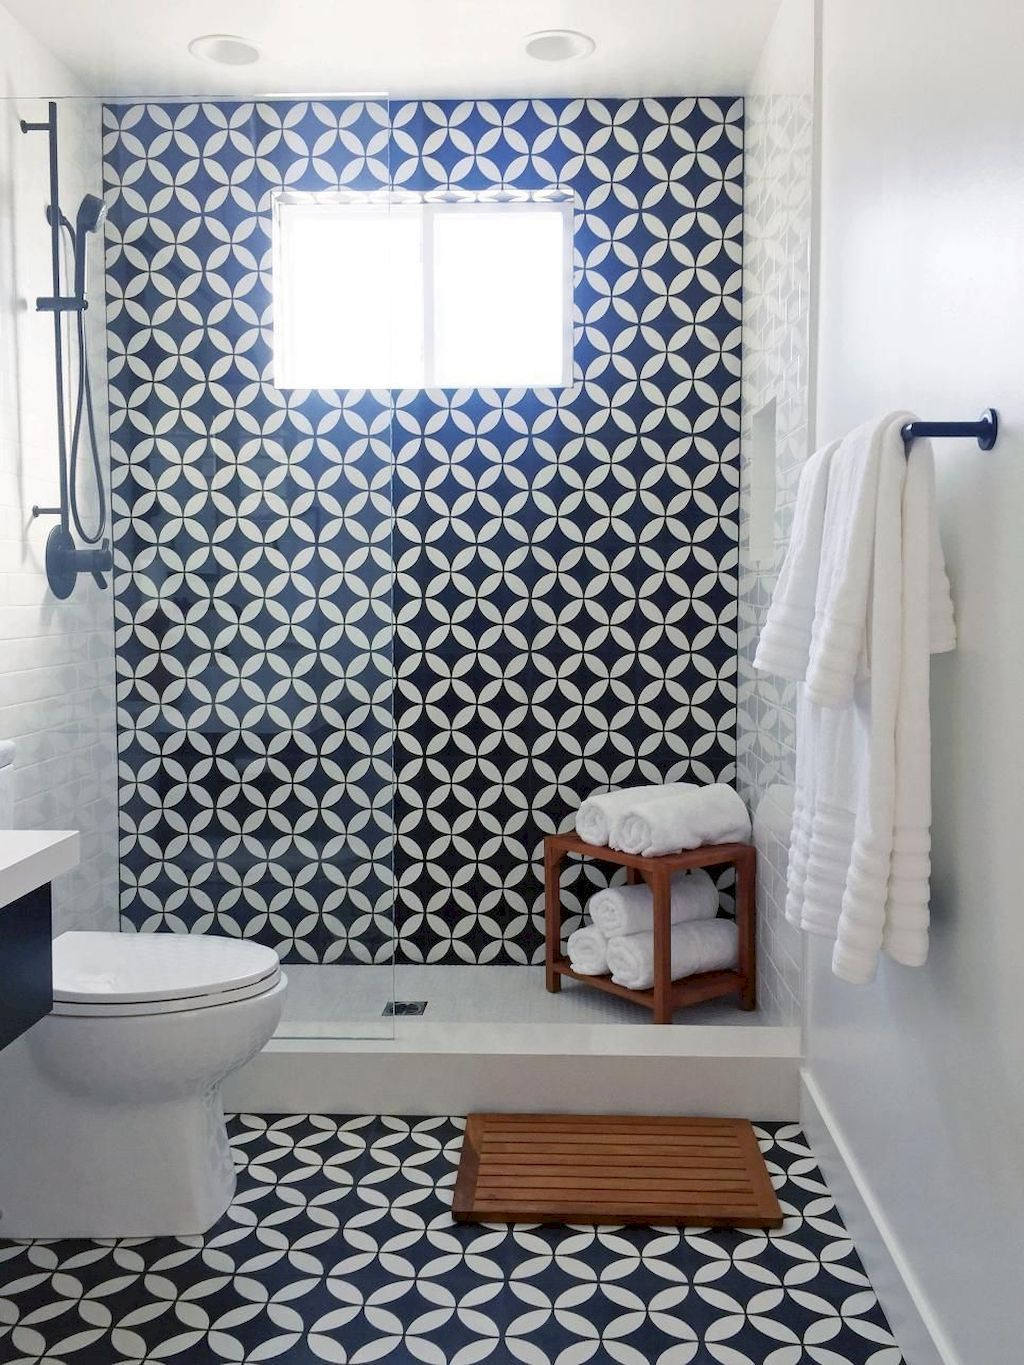 Pinterest Bathroom Floor Tile Ideas